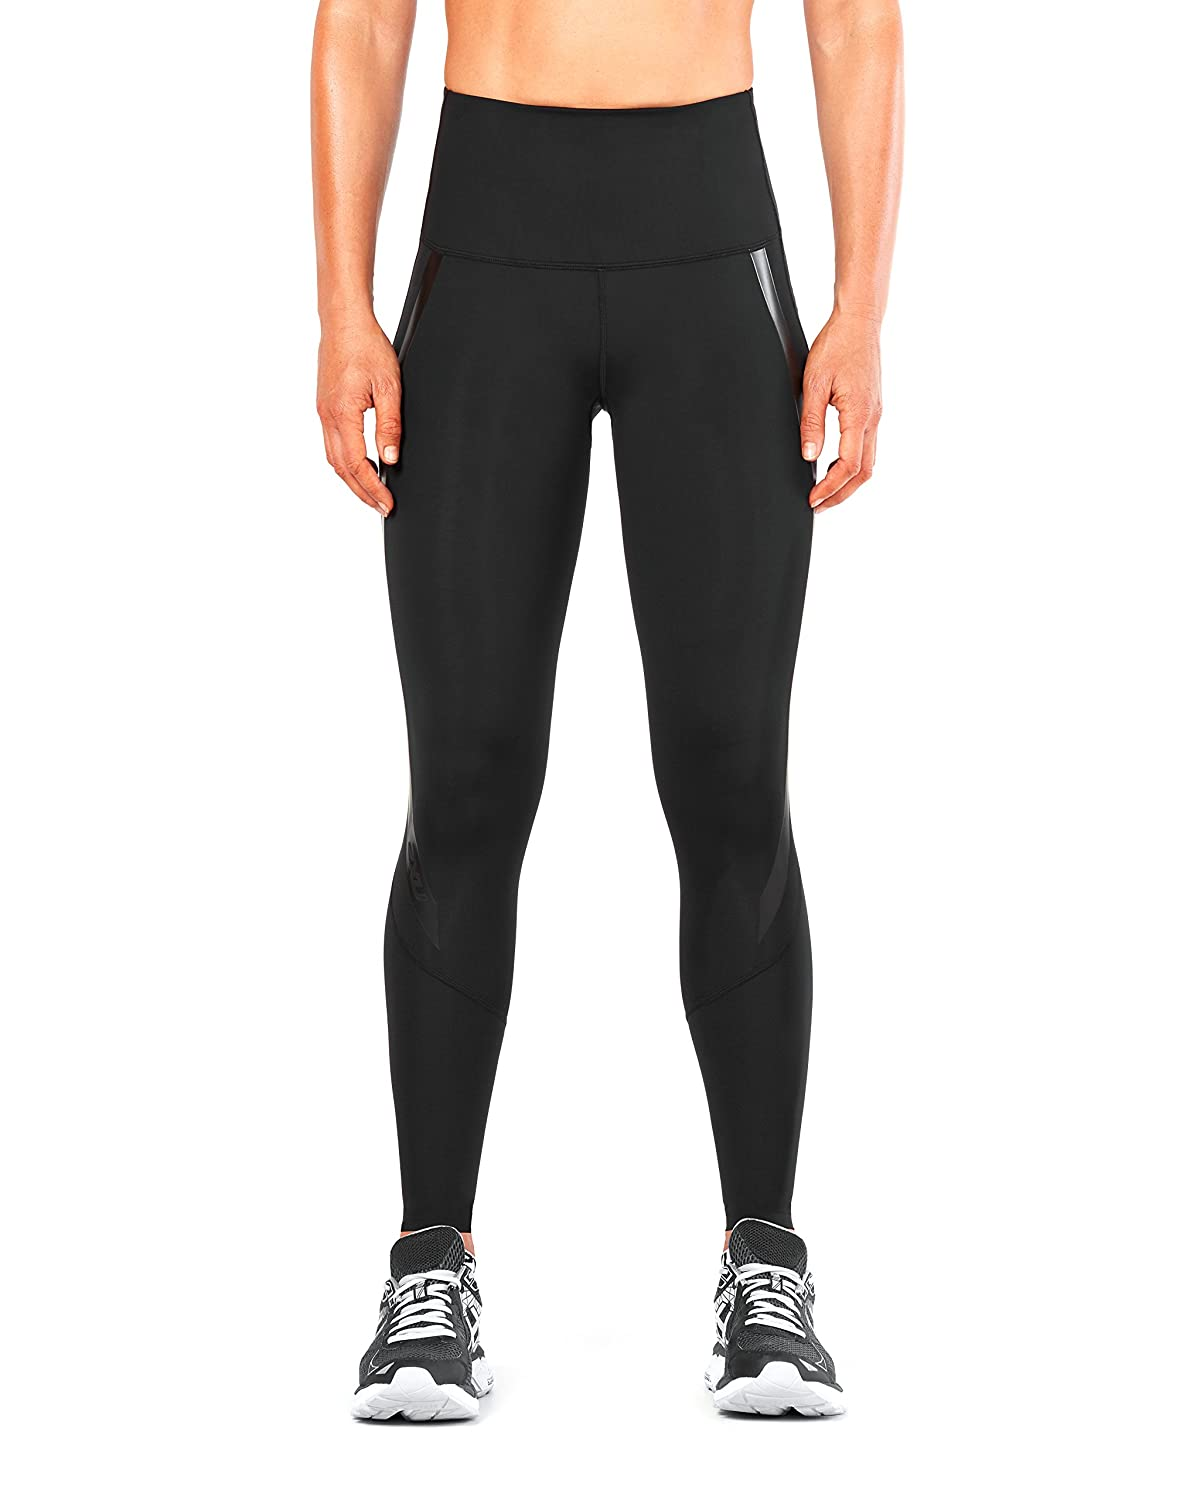 56ff3a65330bd Top 10 wholesale High Rise Compression Pants - Chinabrands.com